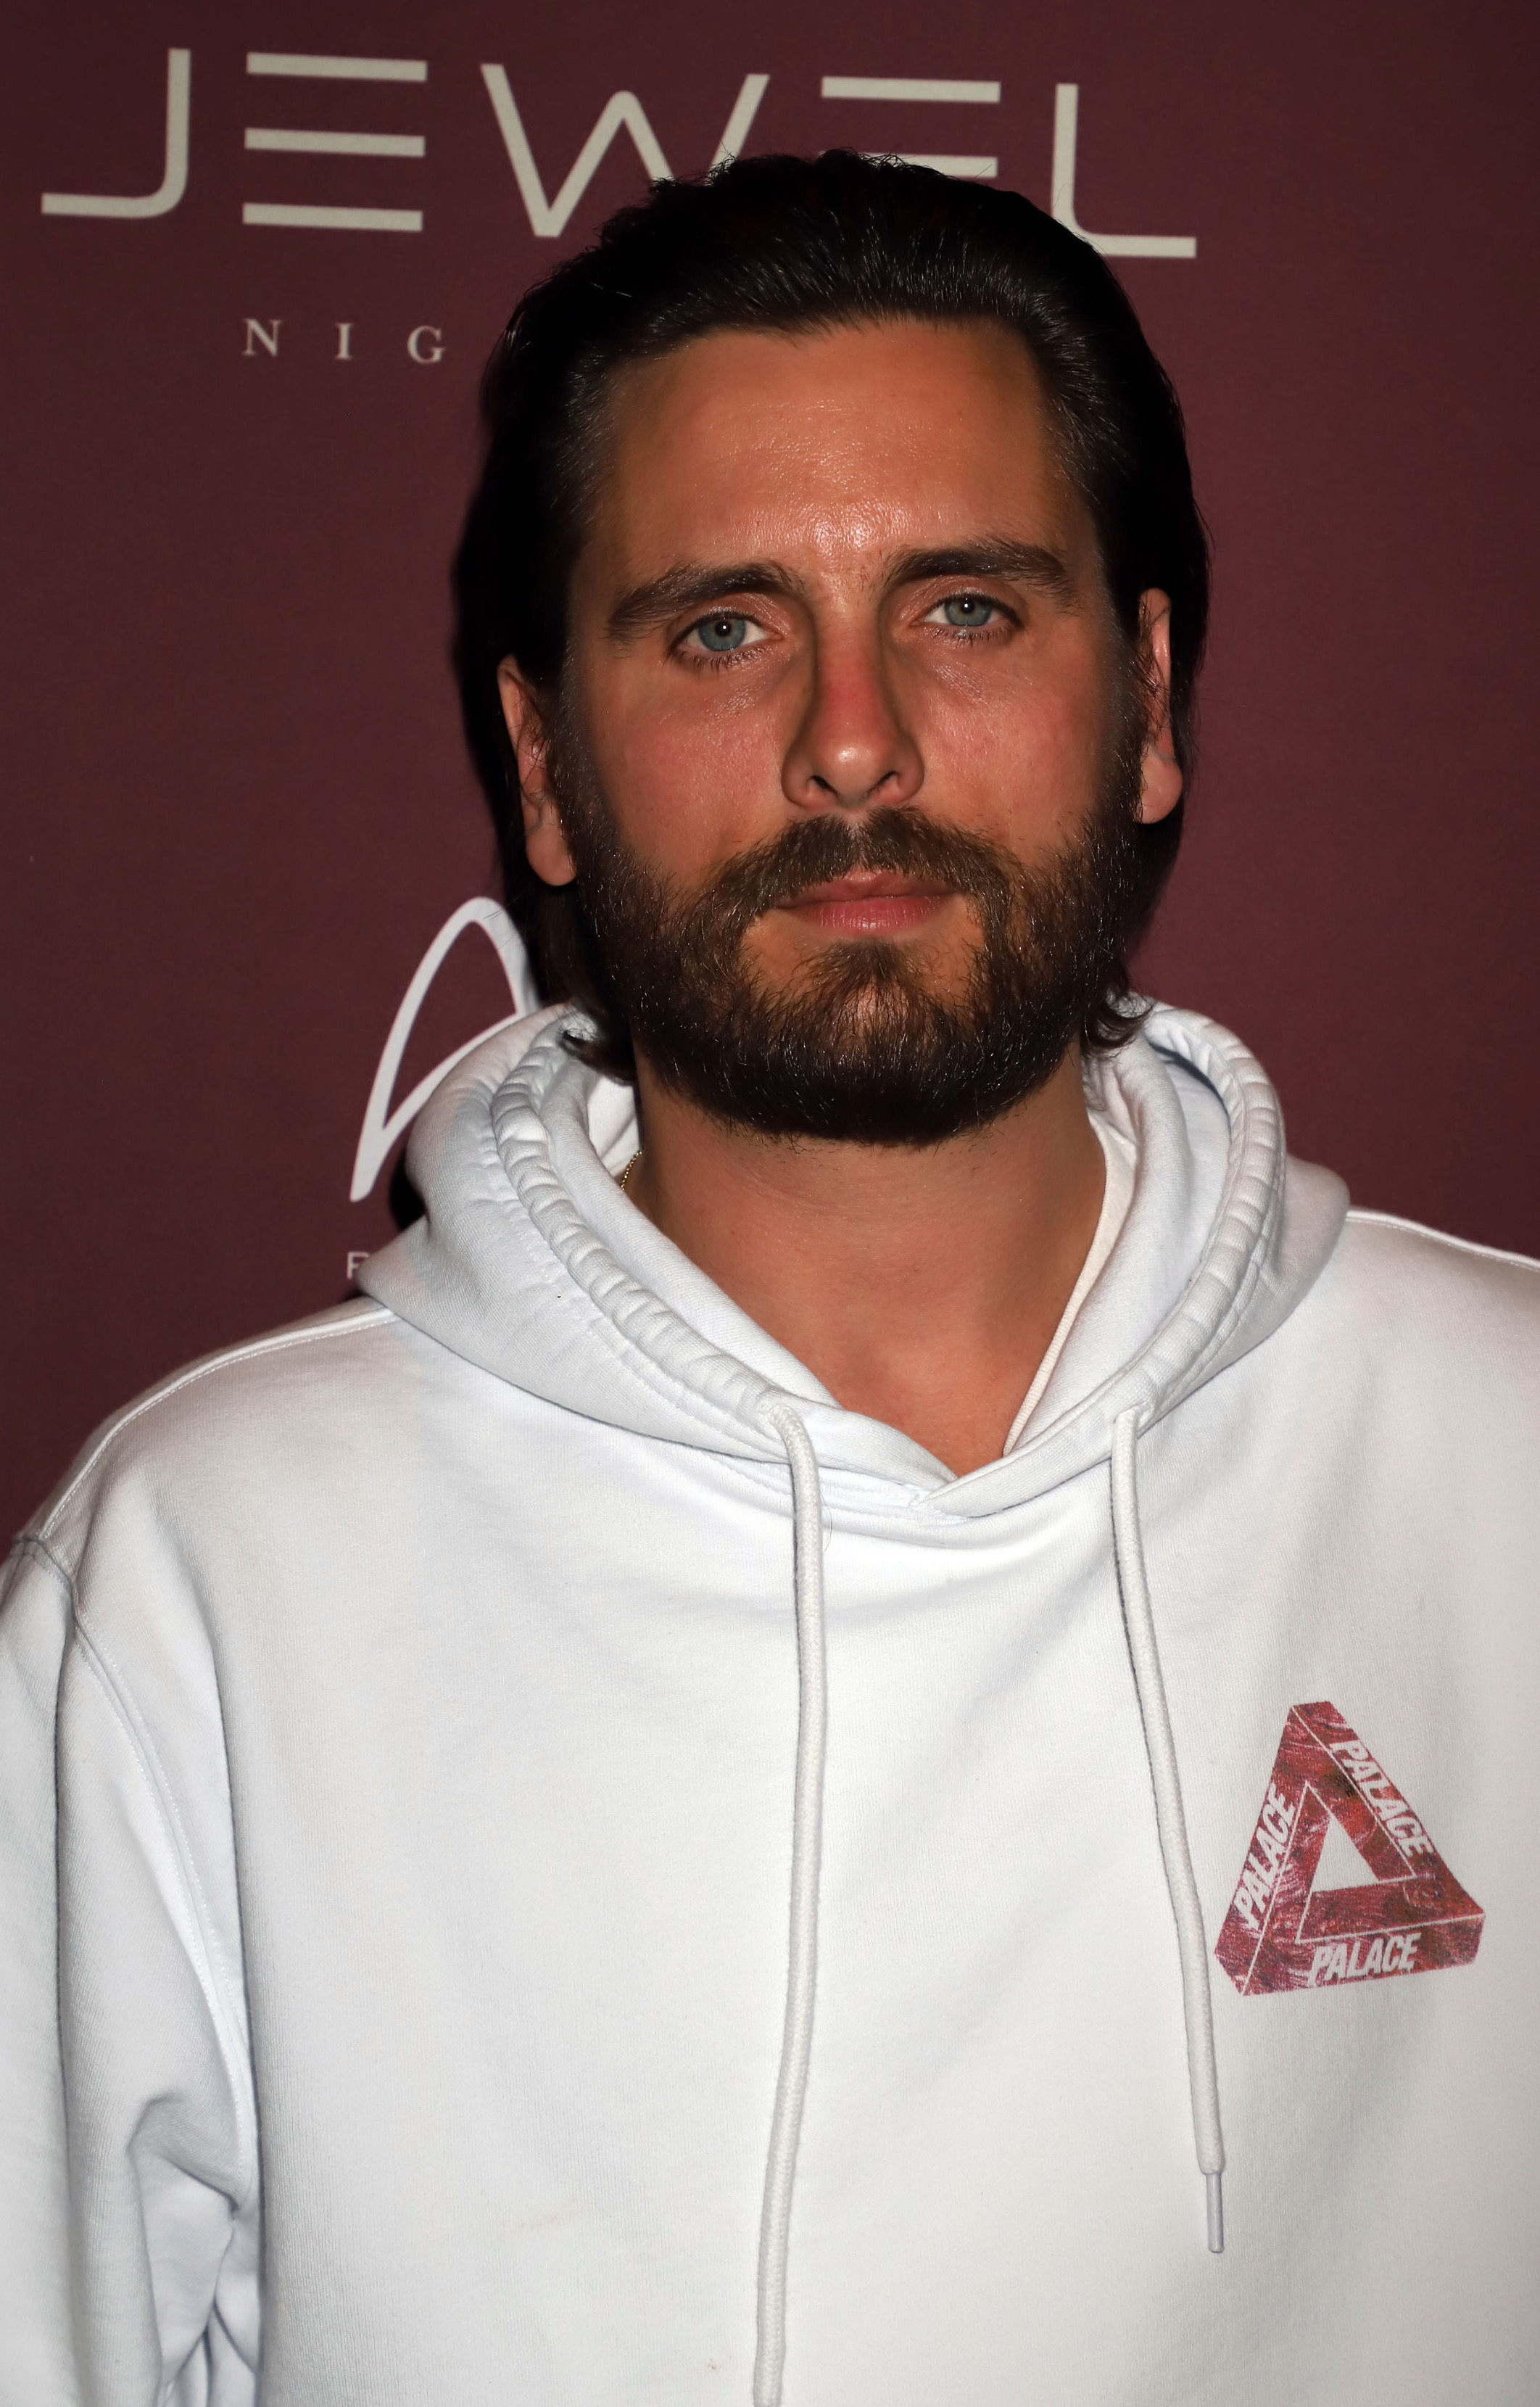 Scott Disick at Jewel Nightclub in the Aria Hotel & Casino in Las Vegas on March 23, 2018.